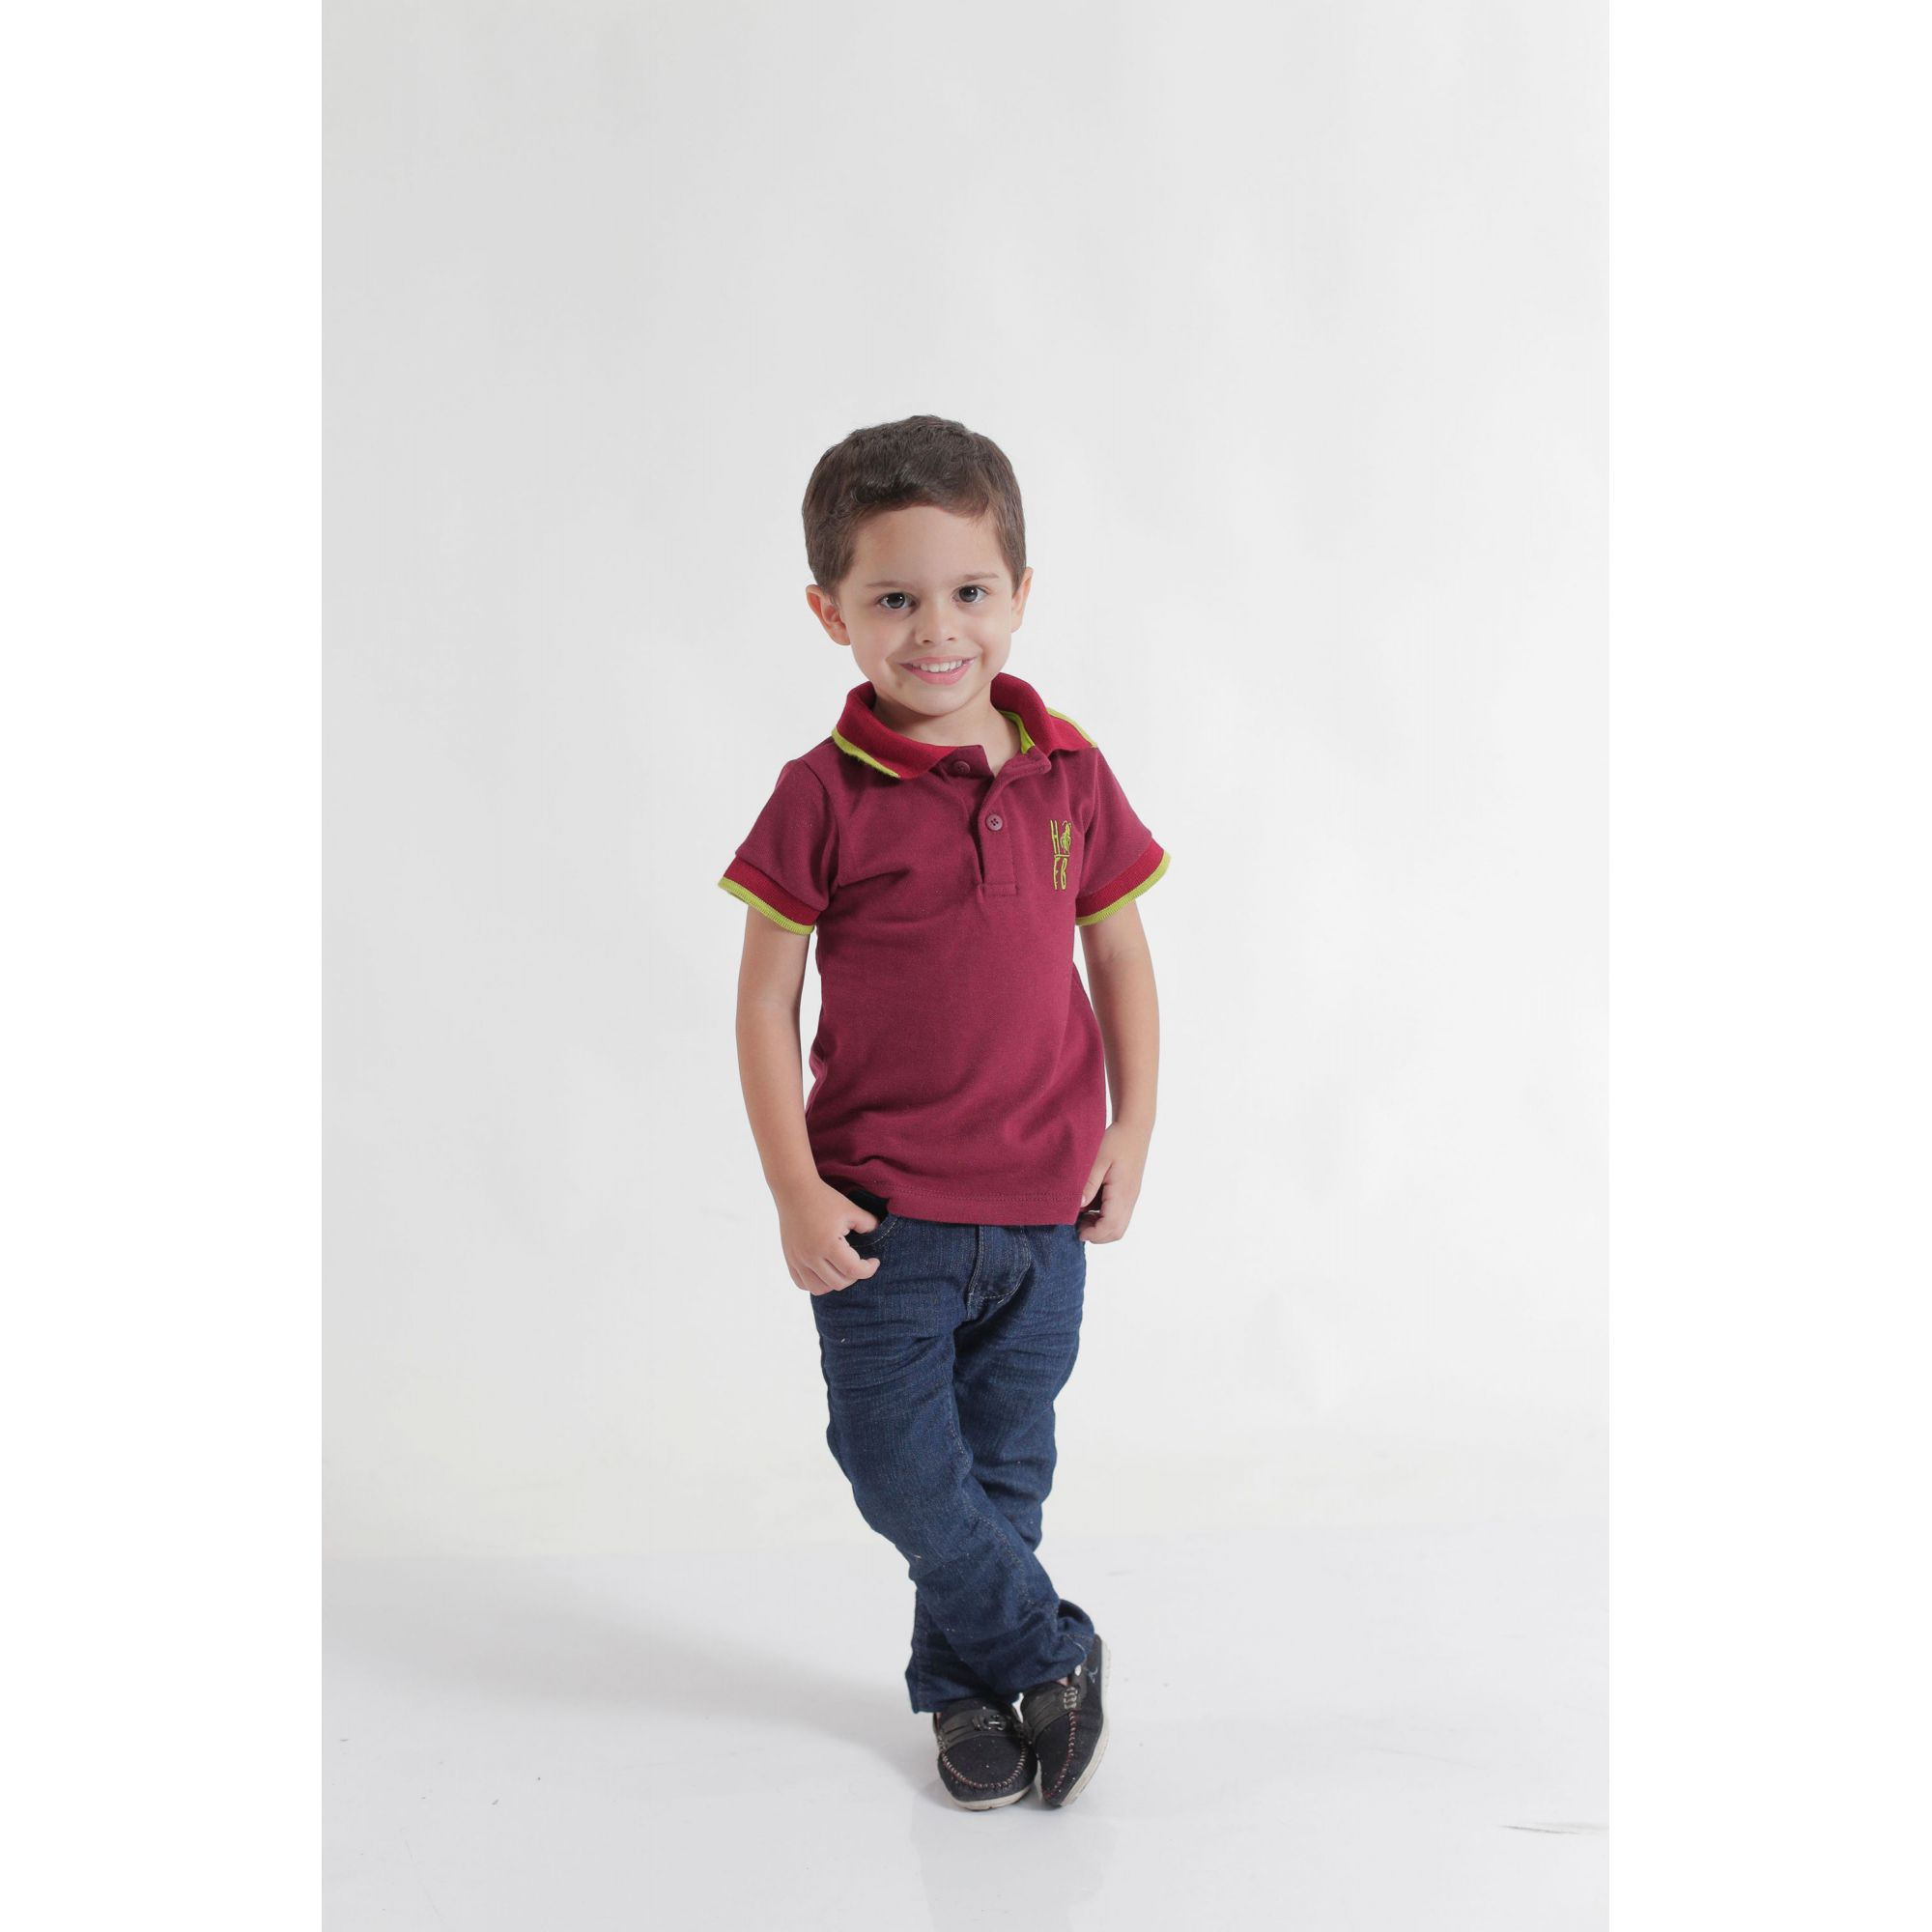 Camisa Polo ou Body Infantil Bordo